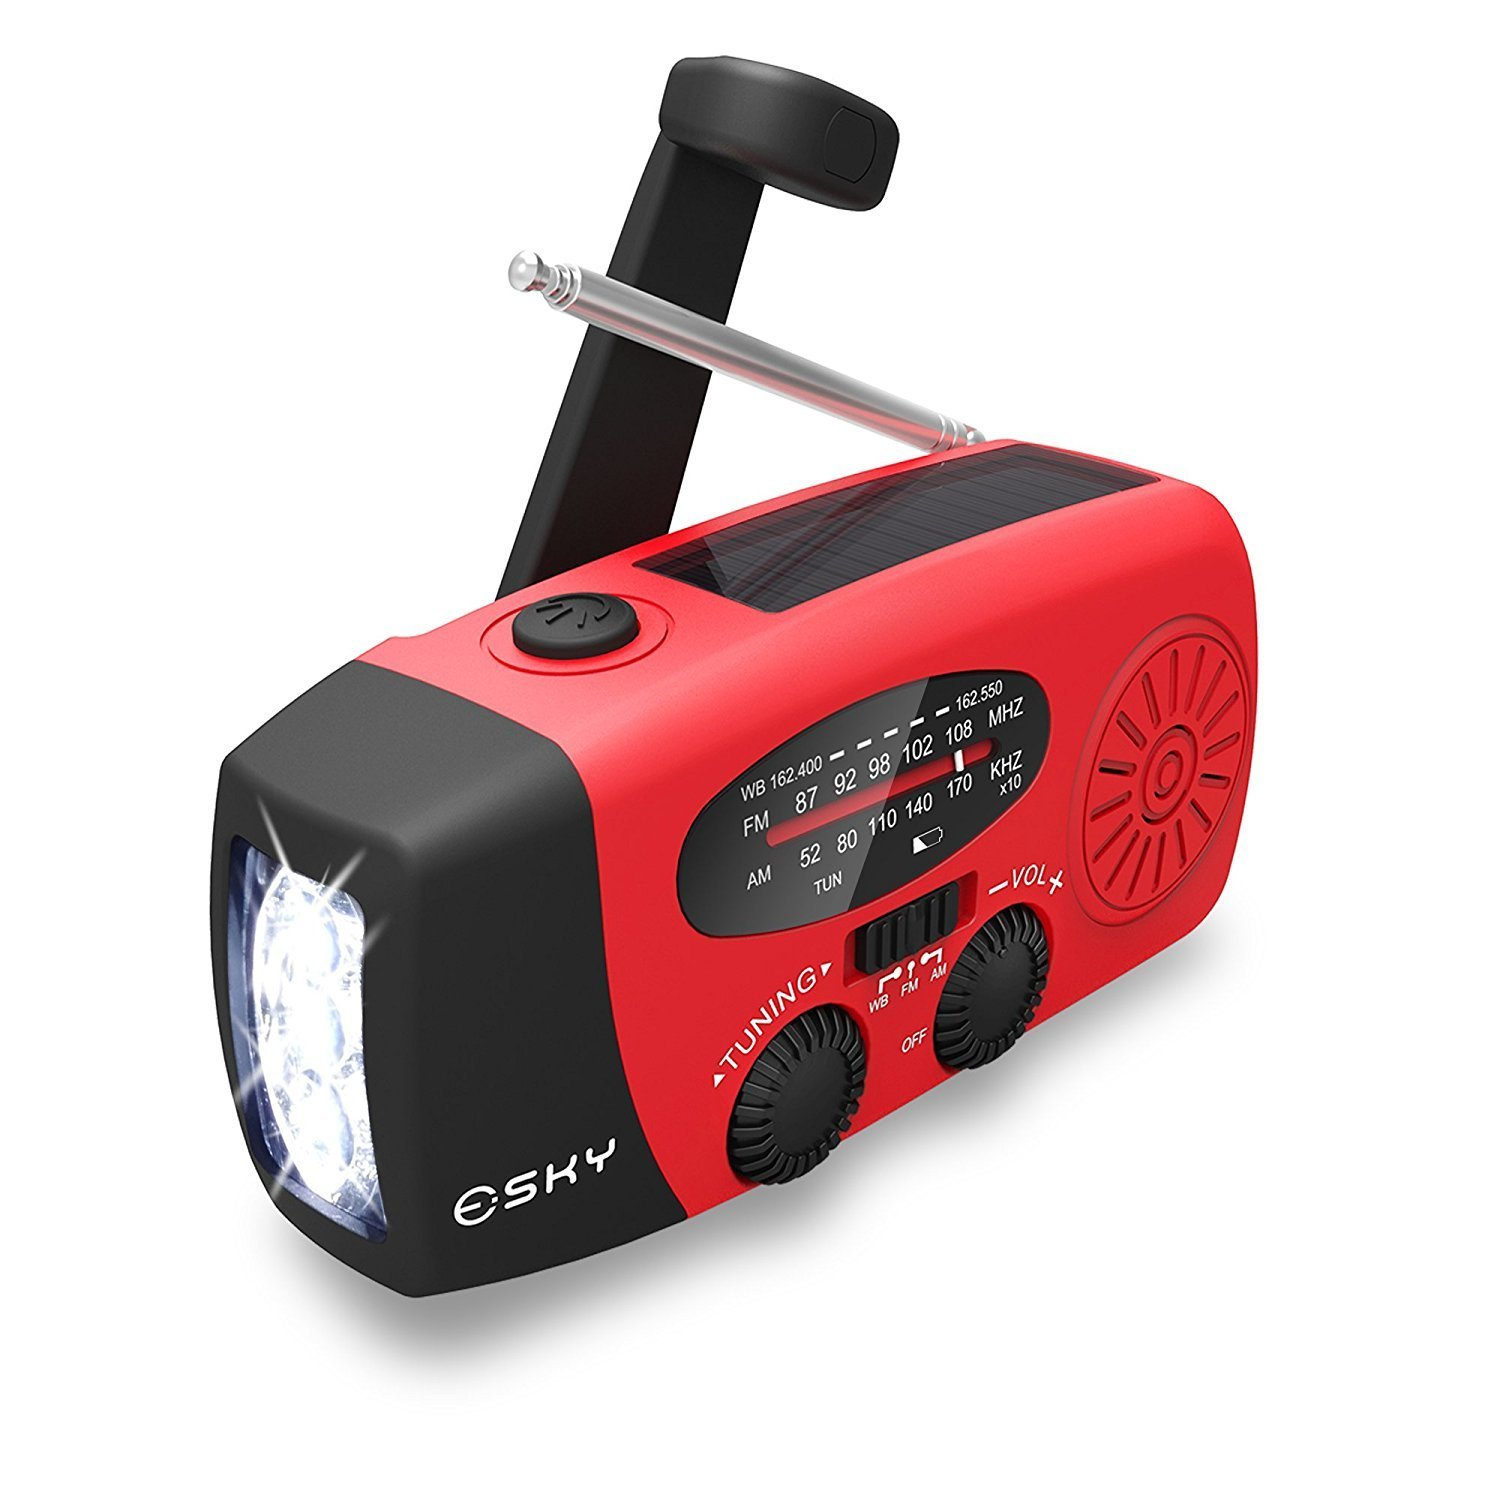 Esky Emergency Solar Hand Crank Radio, AM/FM/WB Weather Radio LED Flashlight Smart Phone Charger Power Bank with Cables, Red